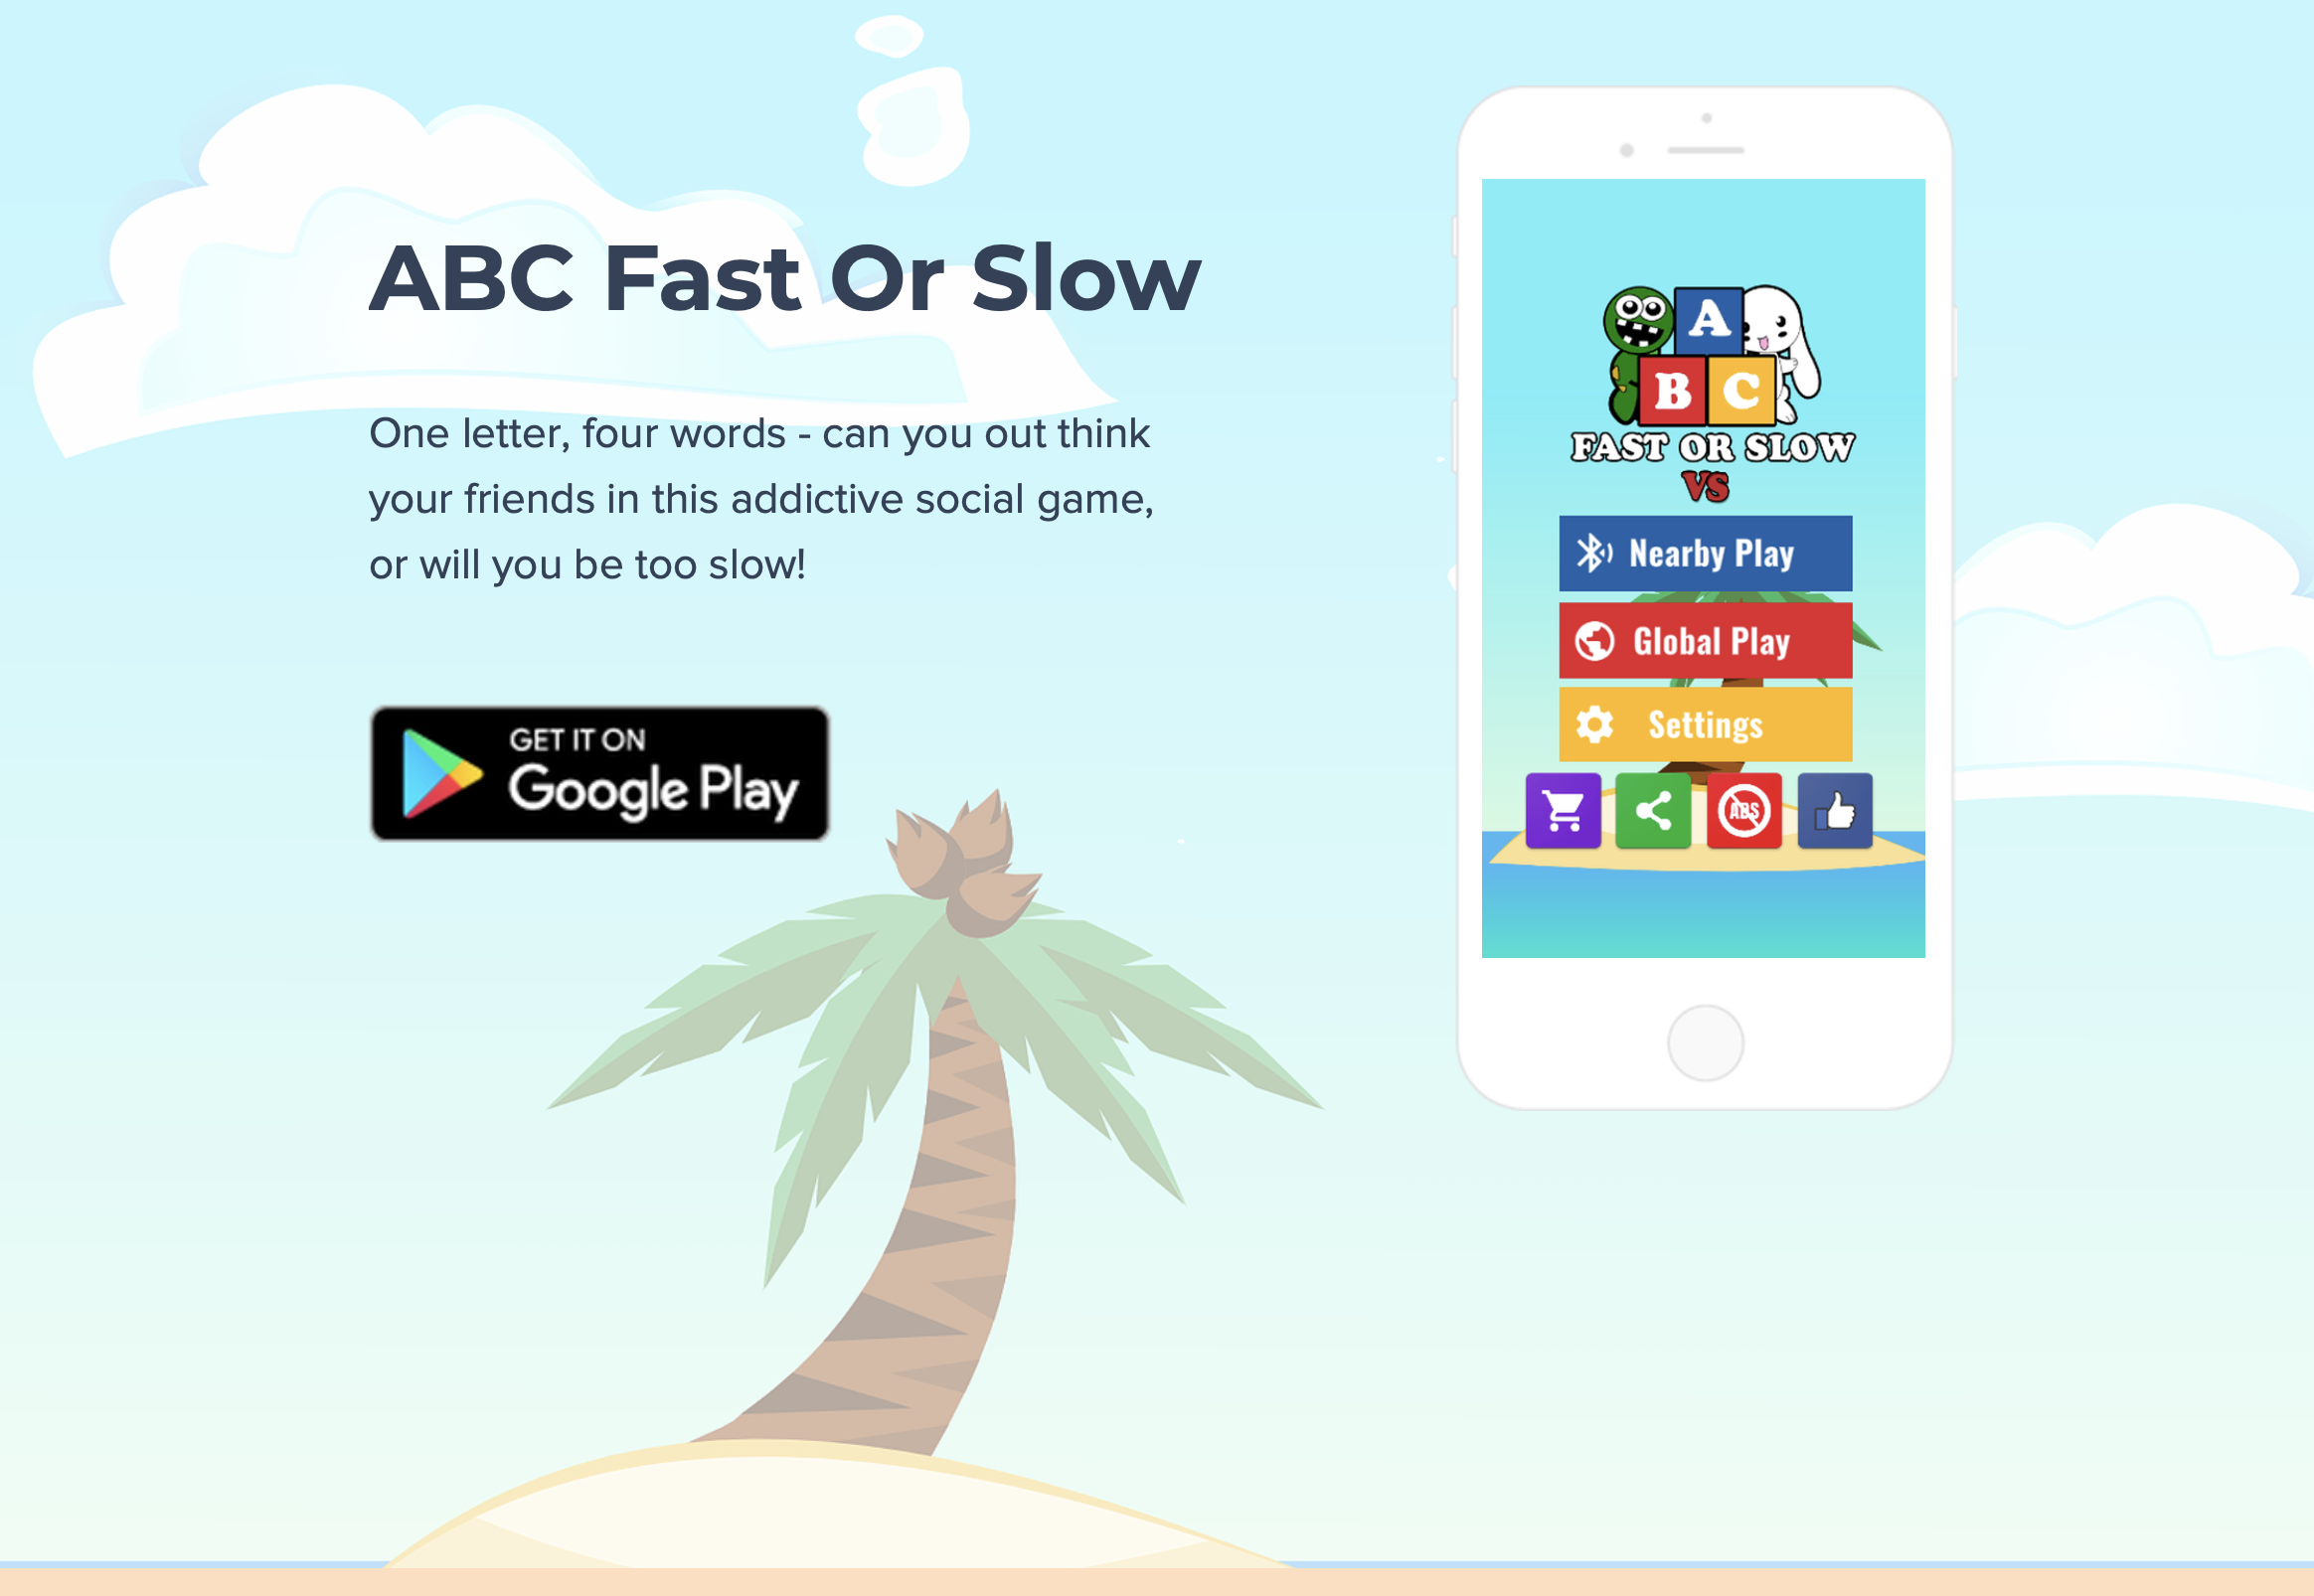 Jamaica, App, App Development, Caribbean, Blog, 13thStreetPromotions, 13thStreetPromo, Kenard Smith, ABC Fast Or Slow, Google Play, iTunes, App Store, Android, iOS